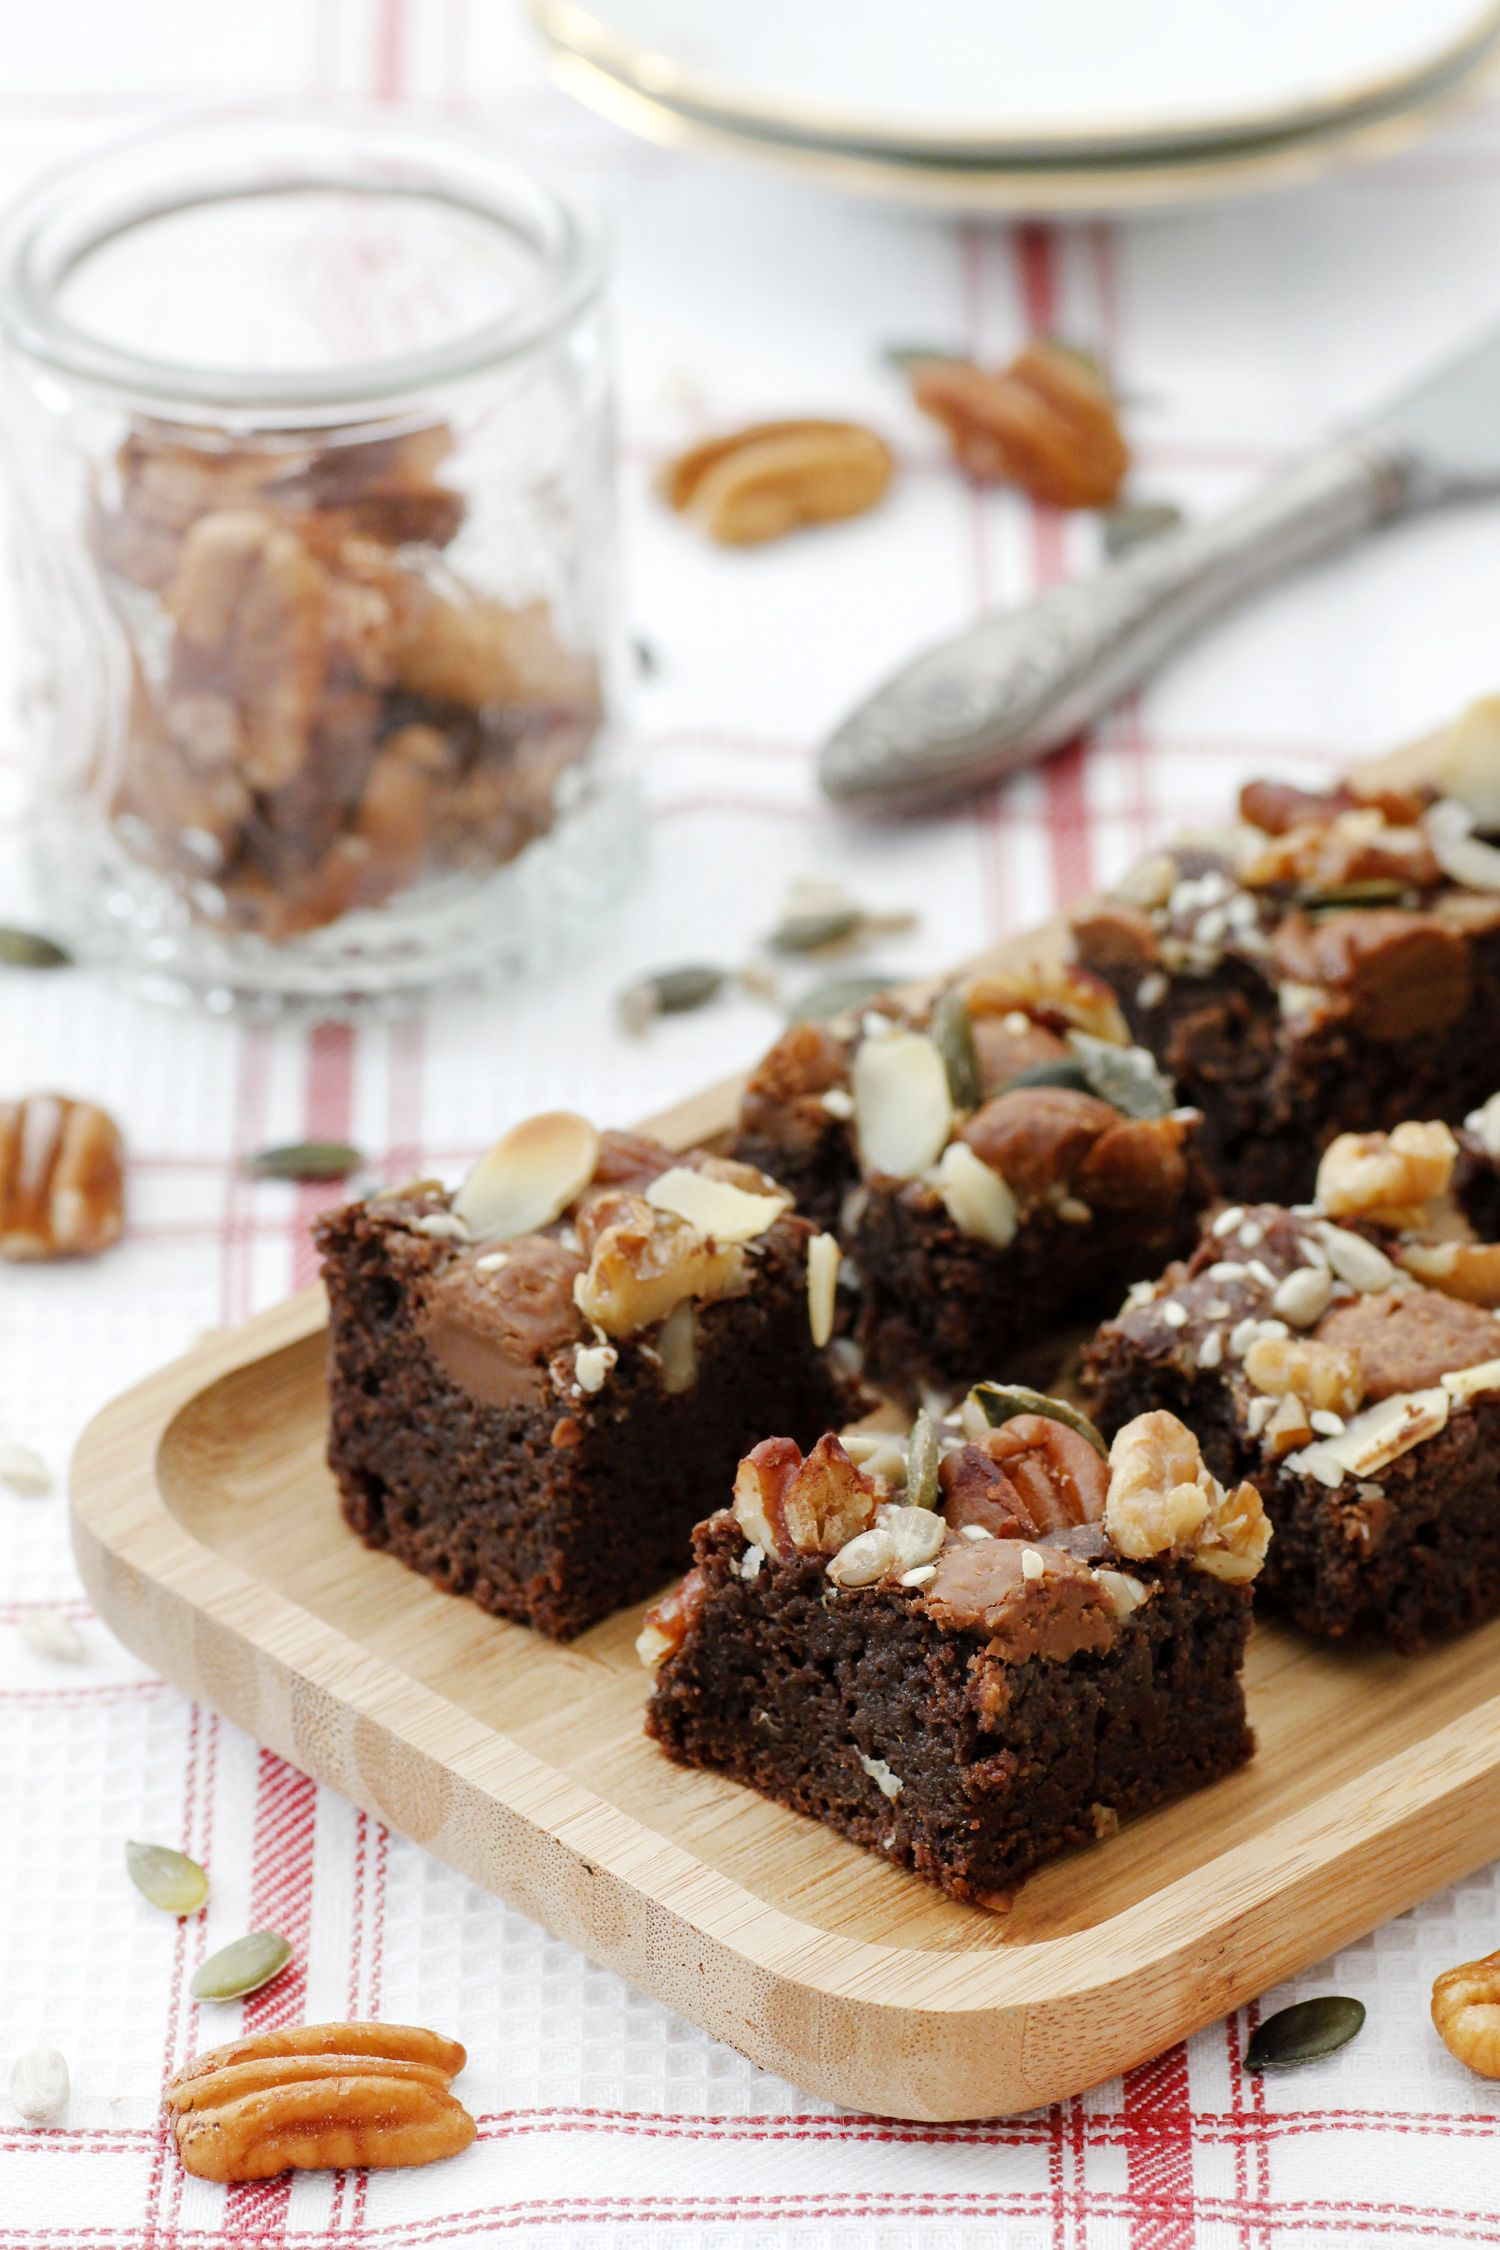 Gluten Free Brownies with Nuts and Seeds